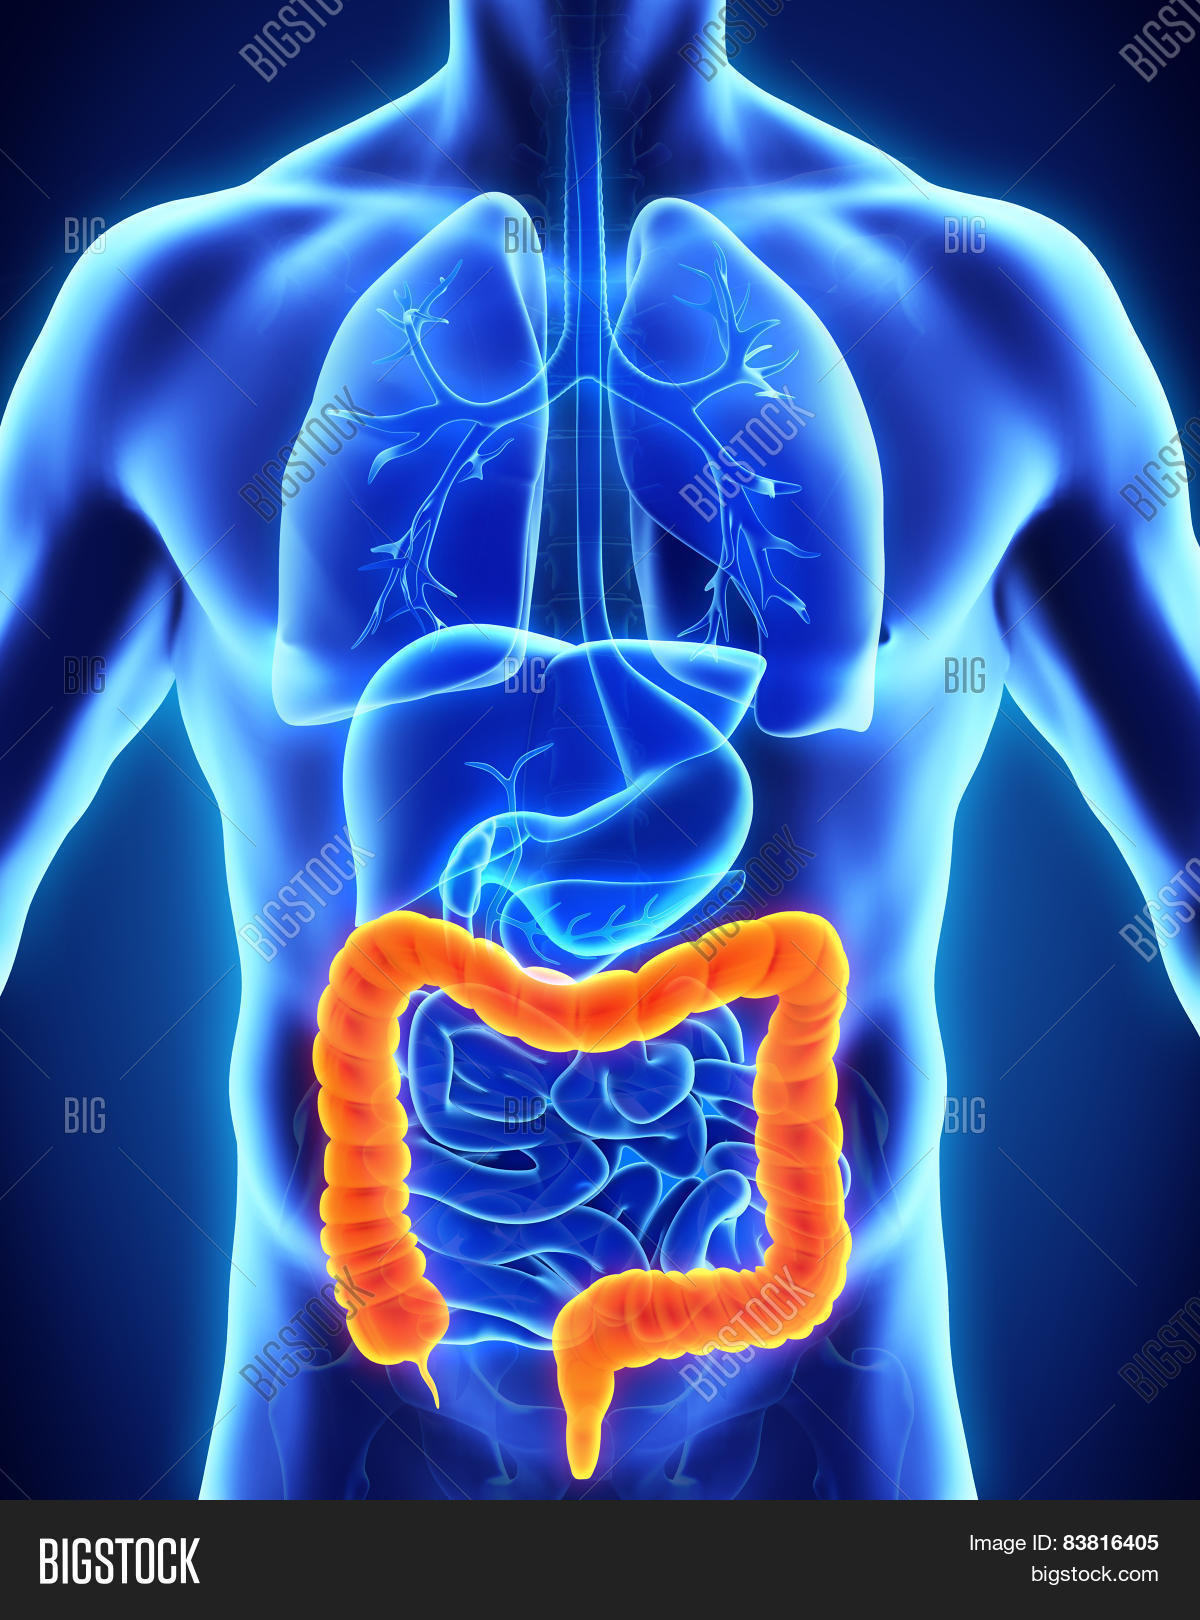 Human Colon Anatomy Image & Photo (Free Trial) | Bigstock